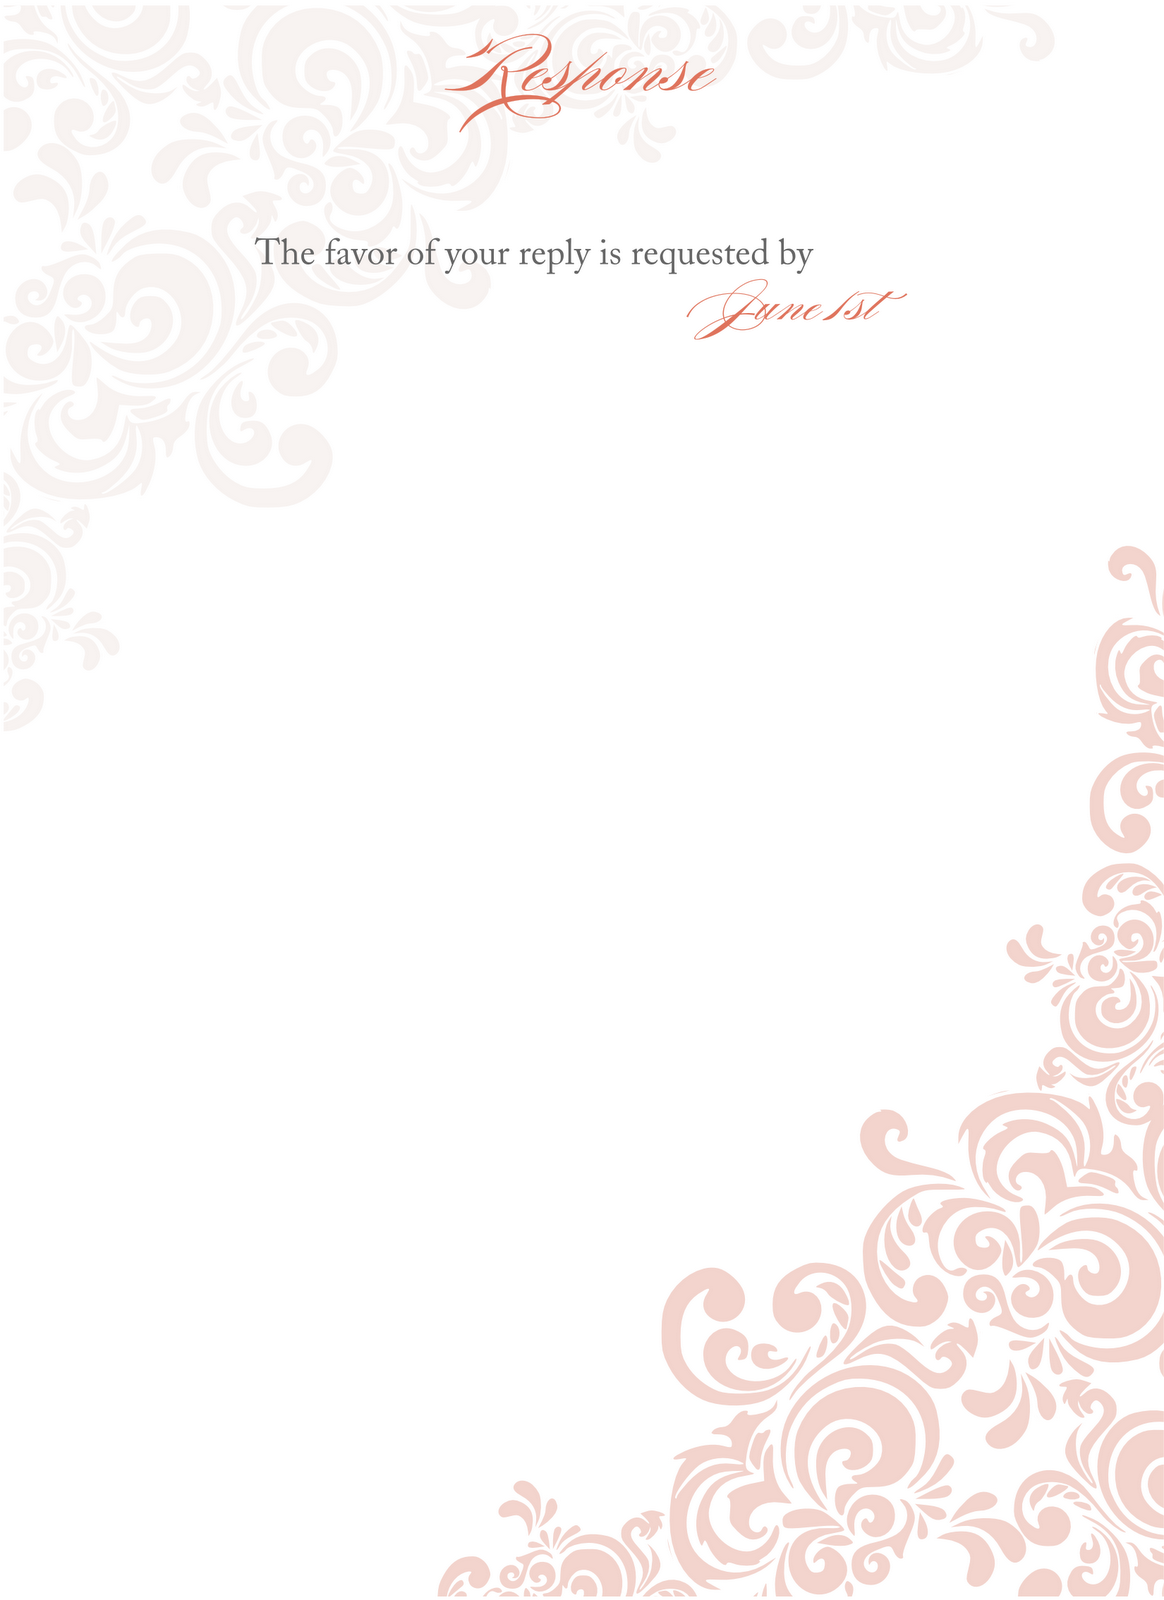 Blank Invitation Card Png 1 Png Image